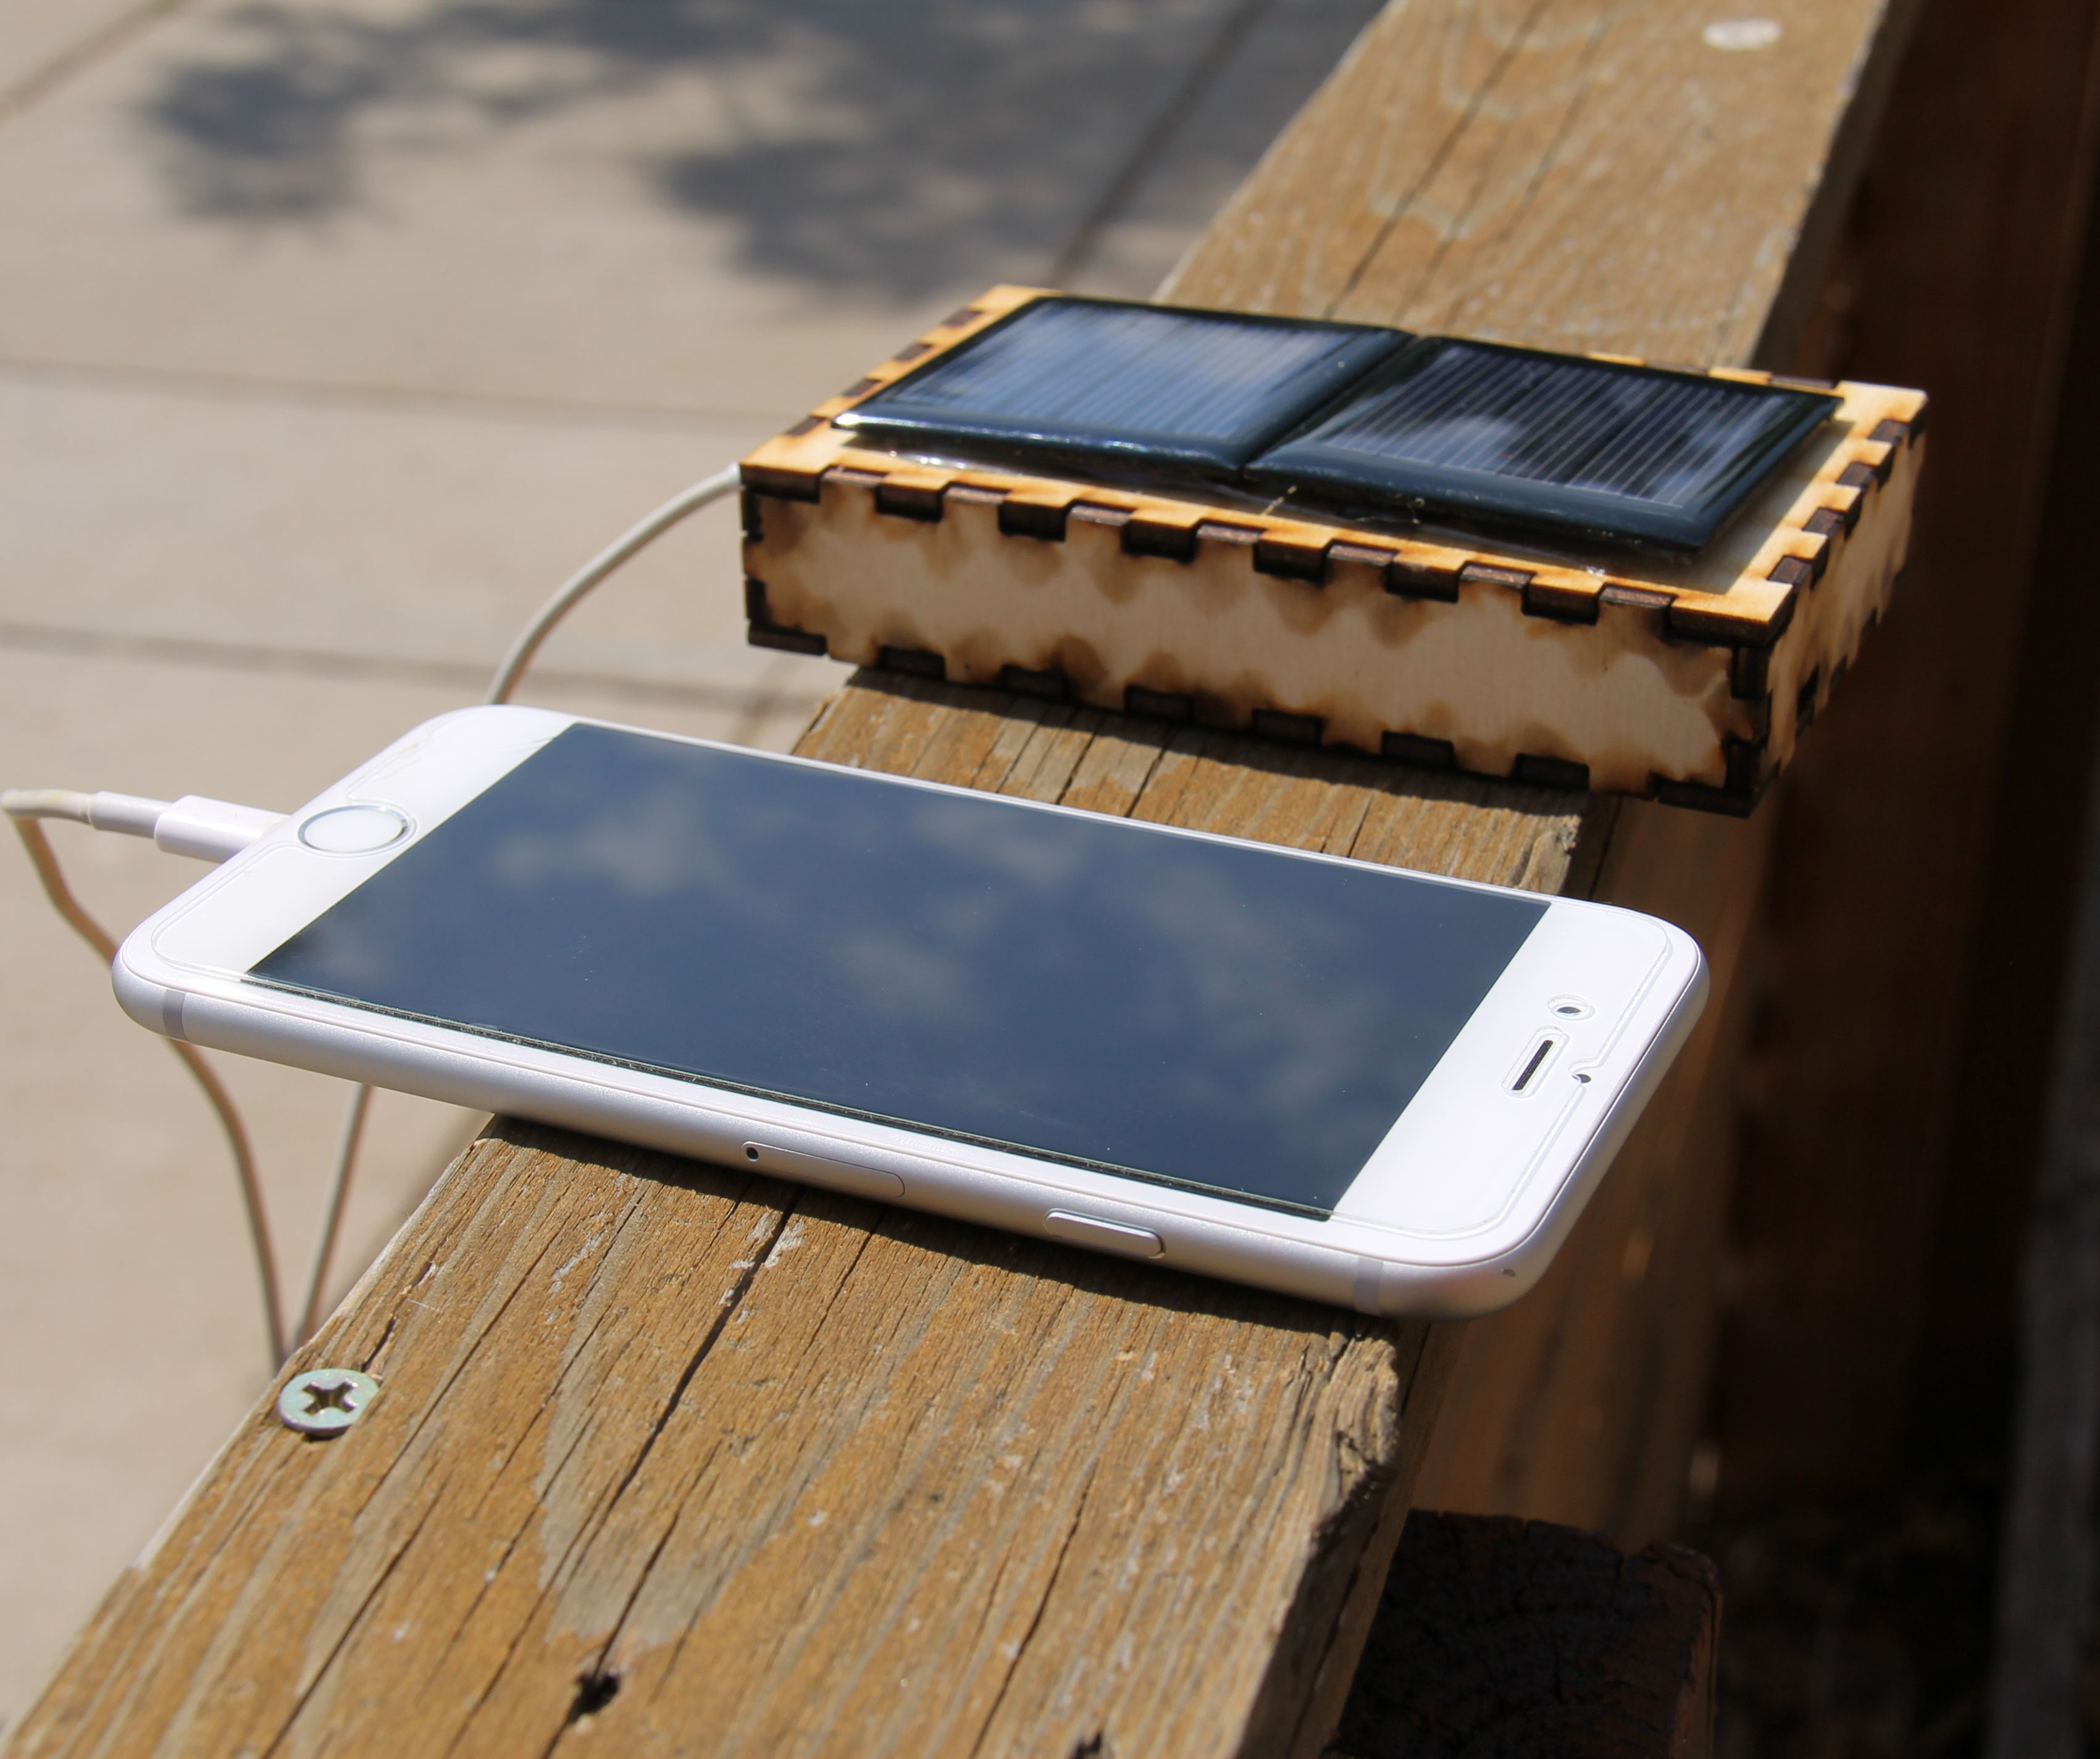 Solar USB Charger for Smartphones (including an iPhone)